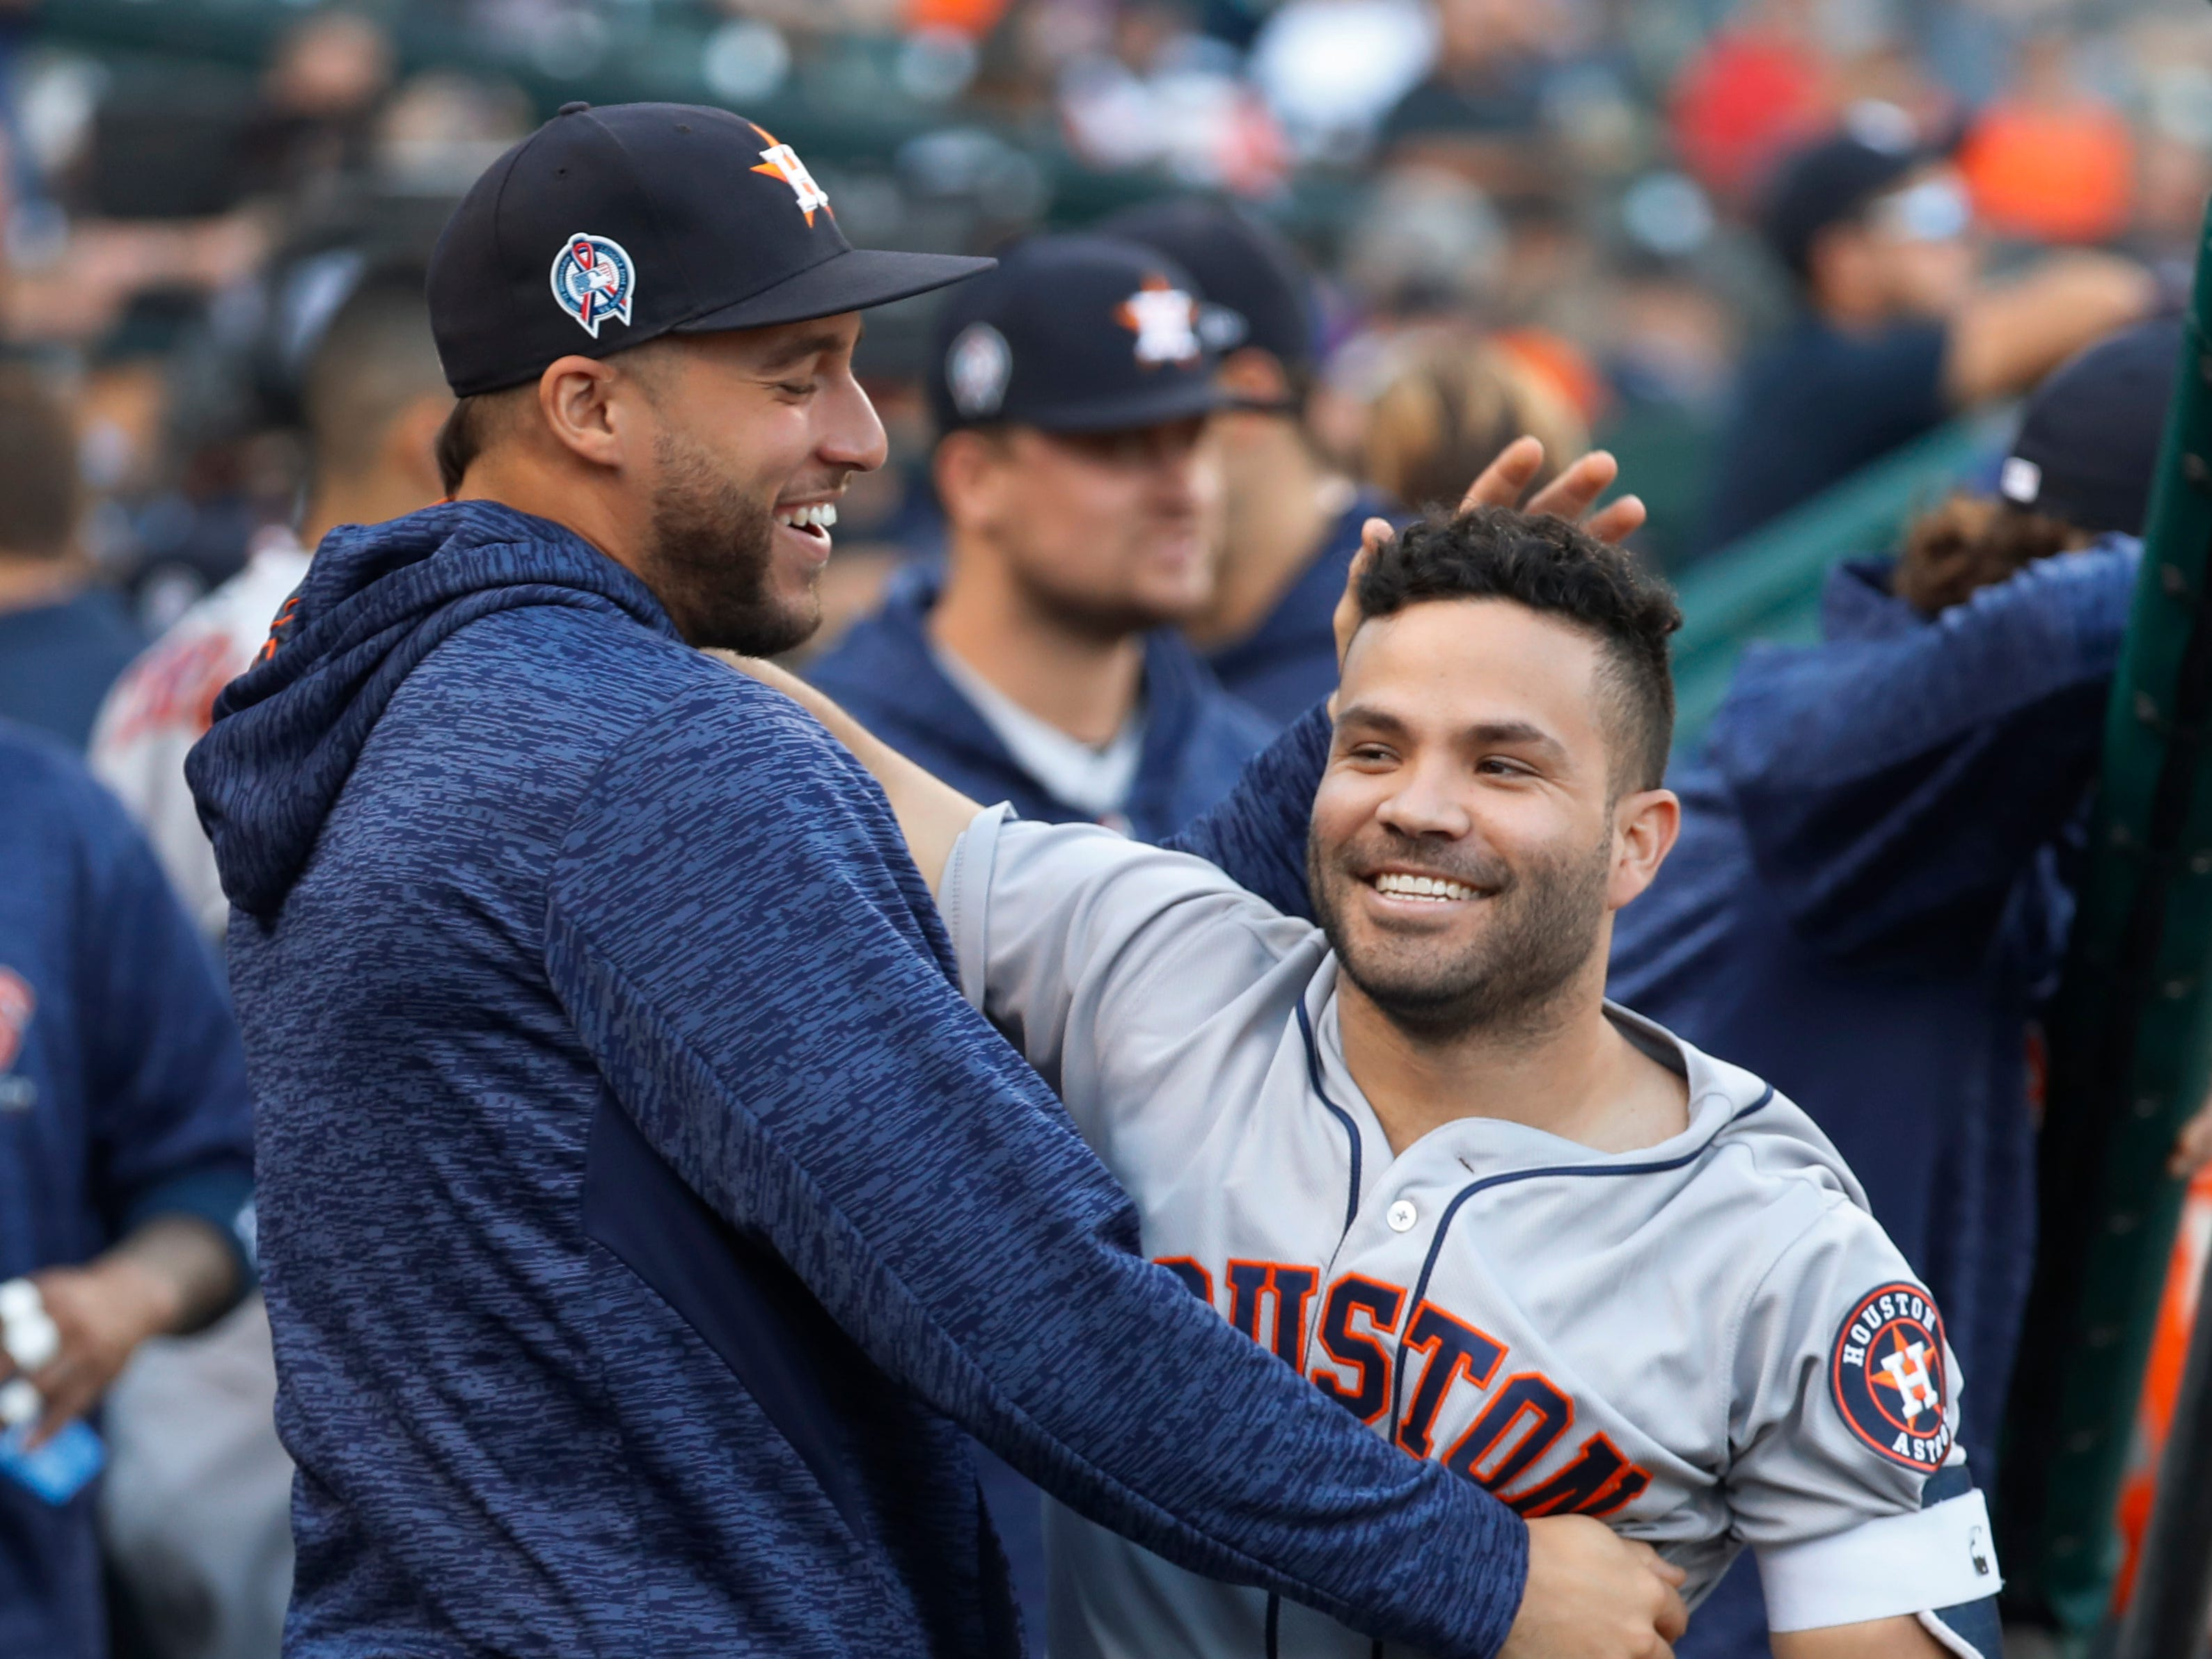 Houston Astros' Jose Altuve, right, celebrates his leadoff solo home run with George Springer in the first inning of a baseball game against the Detroit Tigers in Detroit, Tuesday, Sept. 11, 2018.